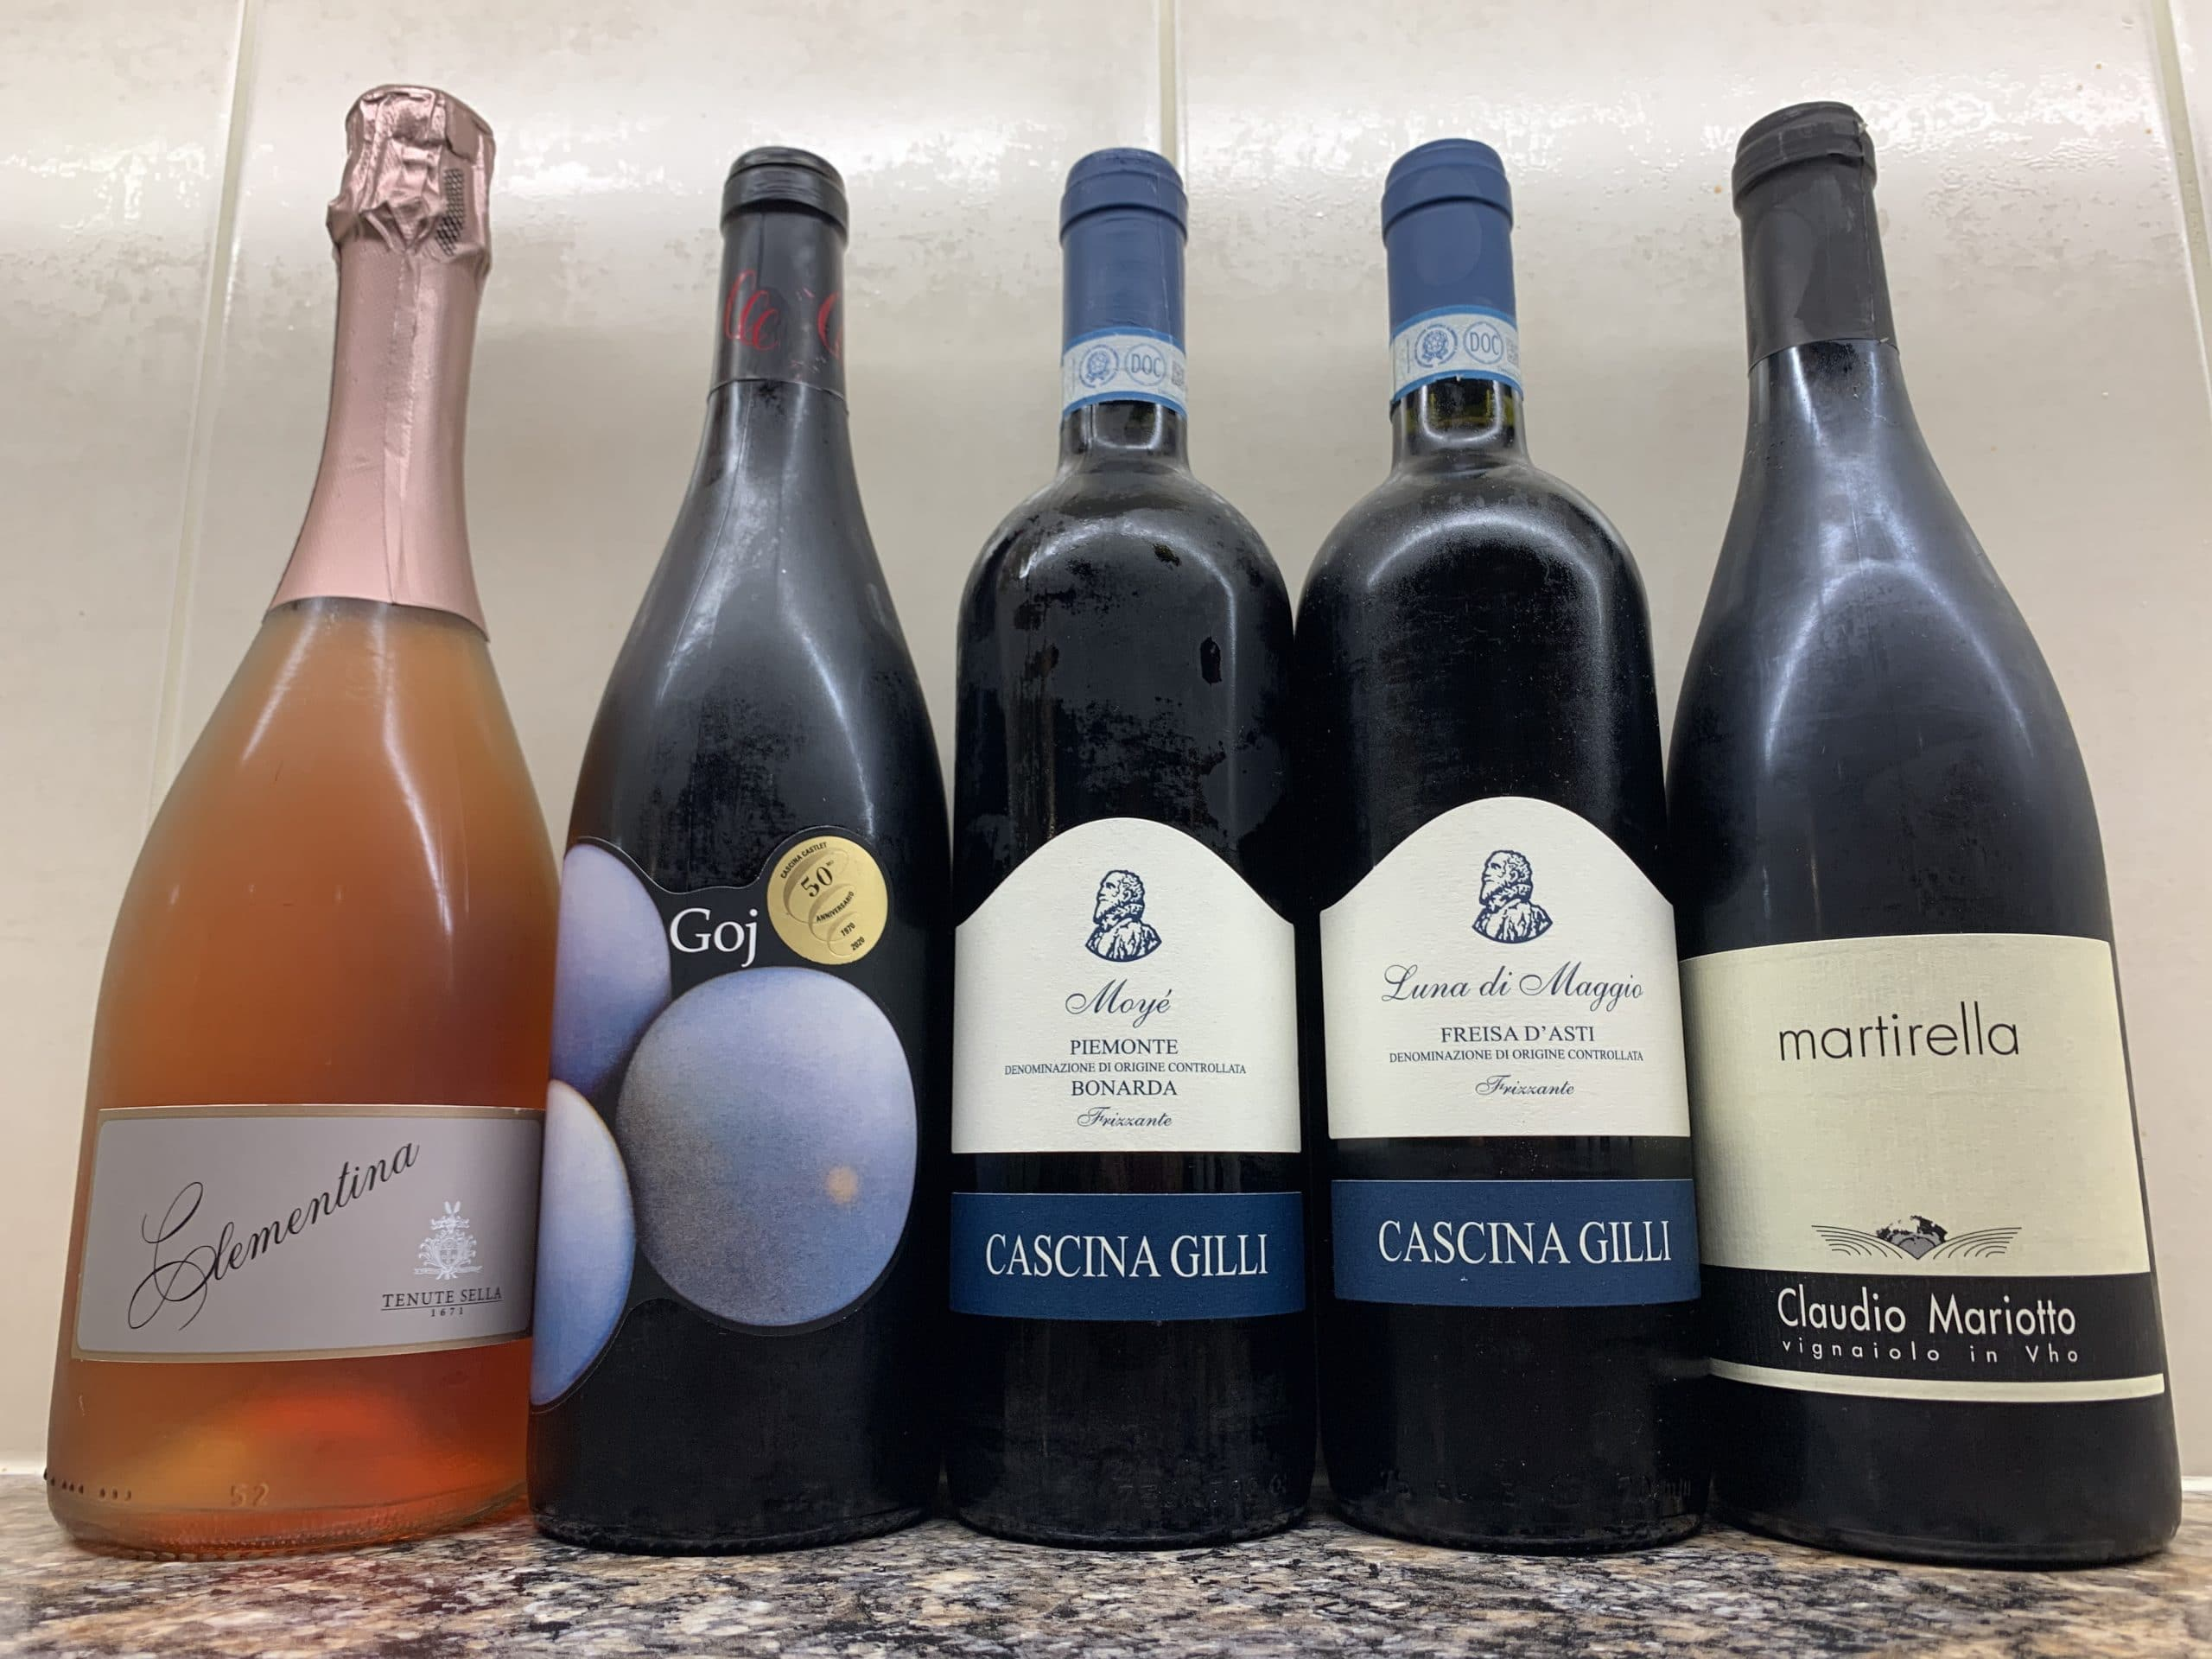 Tank method wines: all the dry, normal alcohol wines